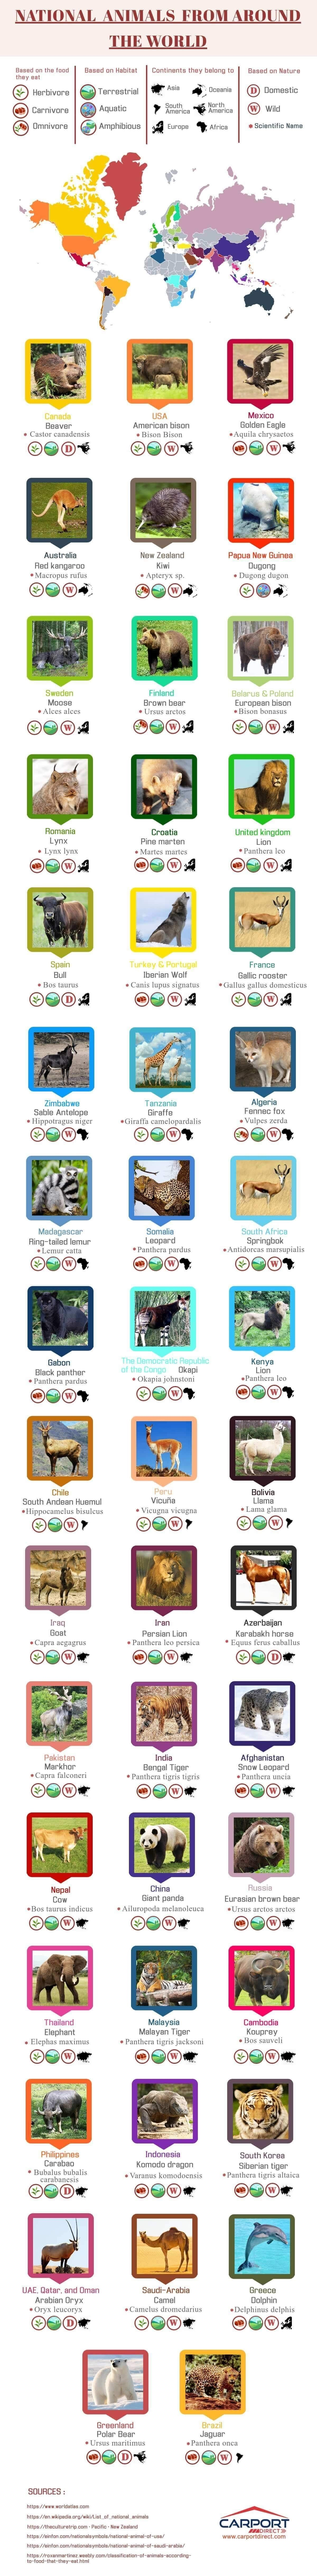 National Animals from Around the World #infographic